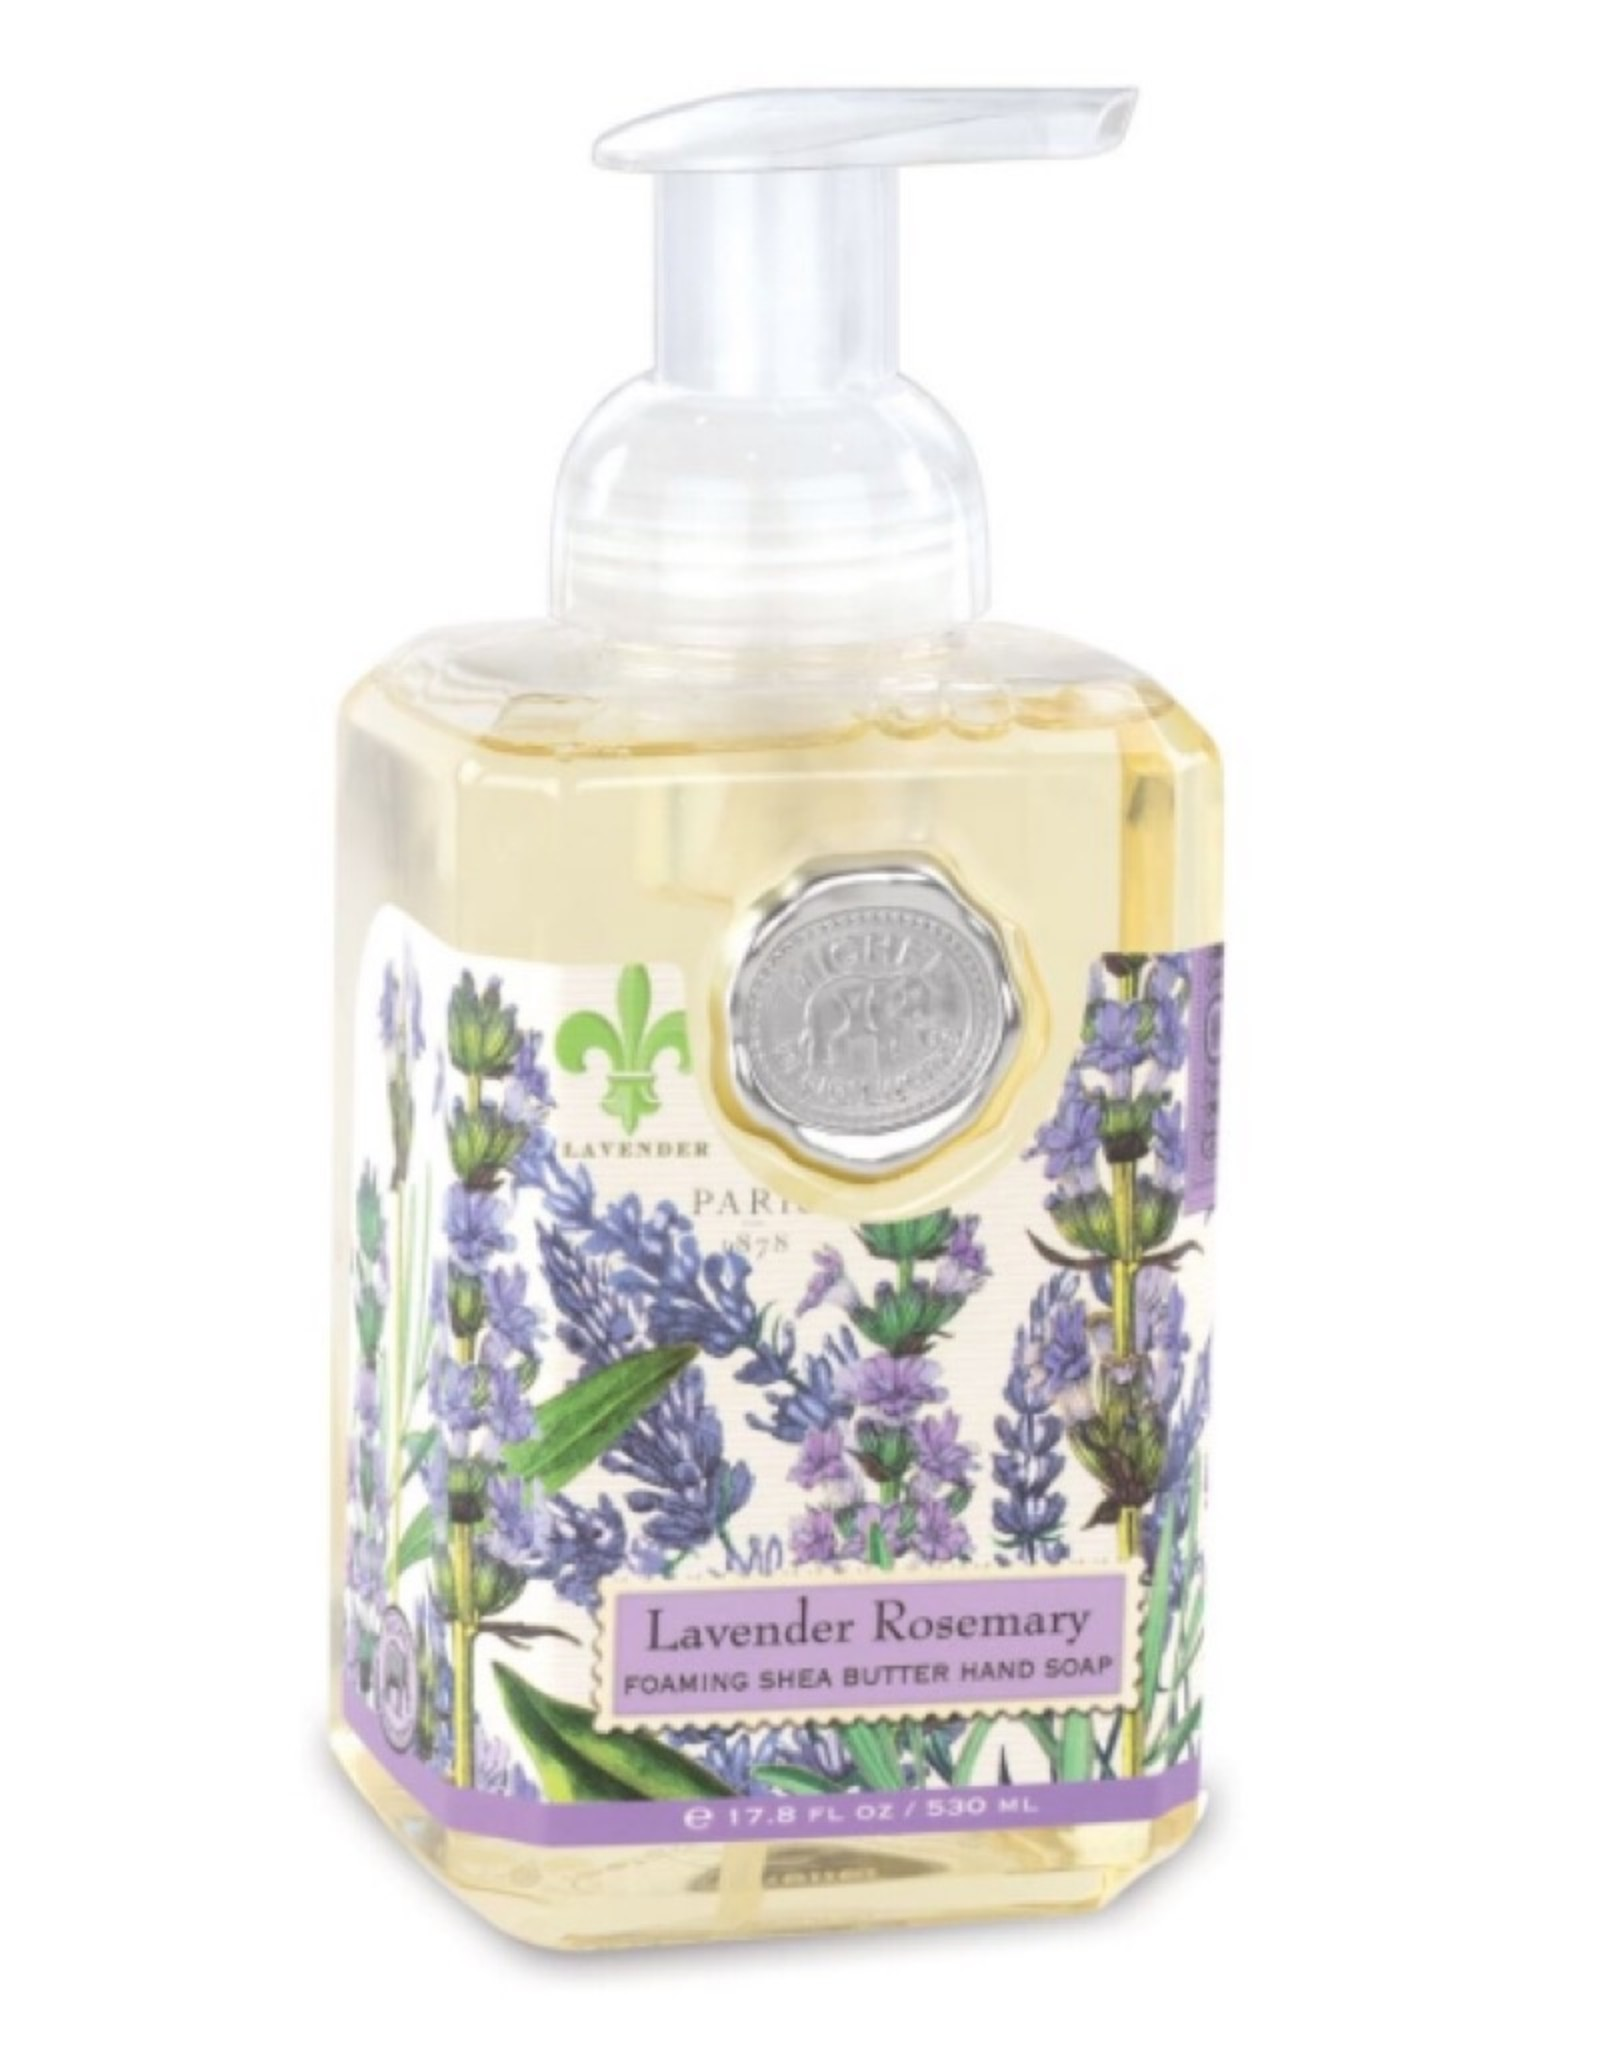 FOA81 Lavender Rosemary Foaming Soap